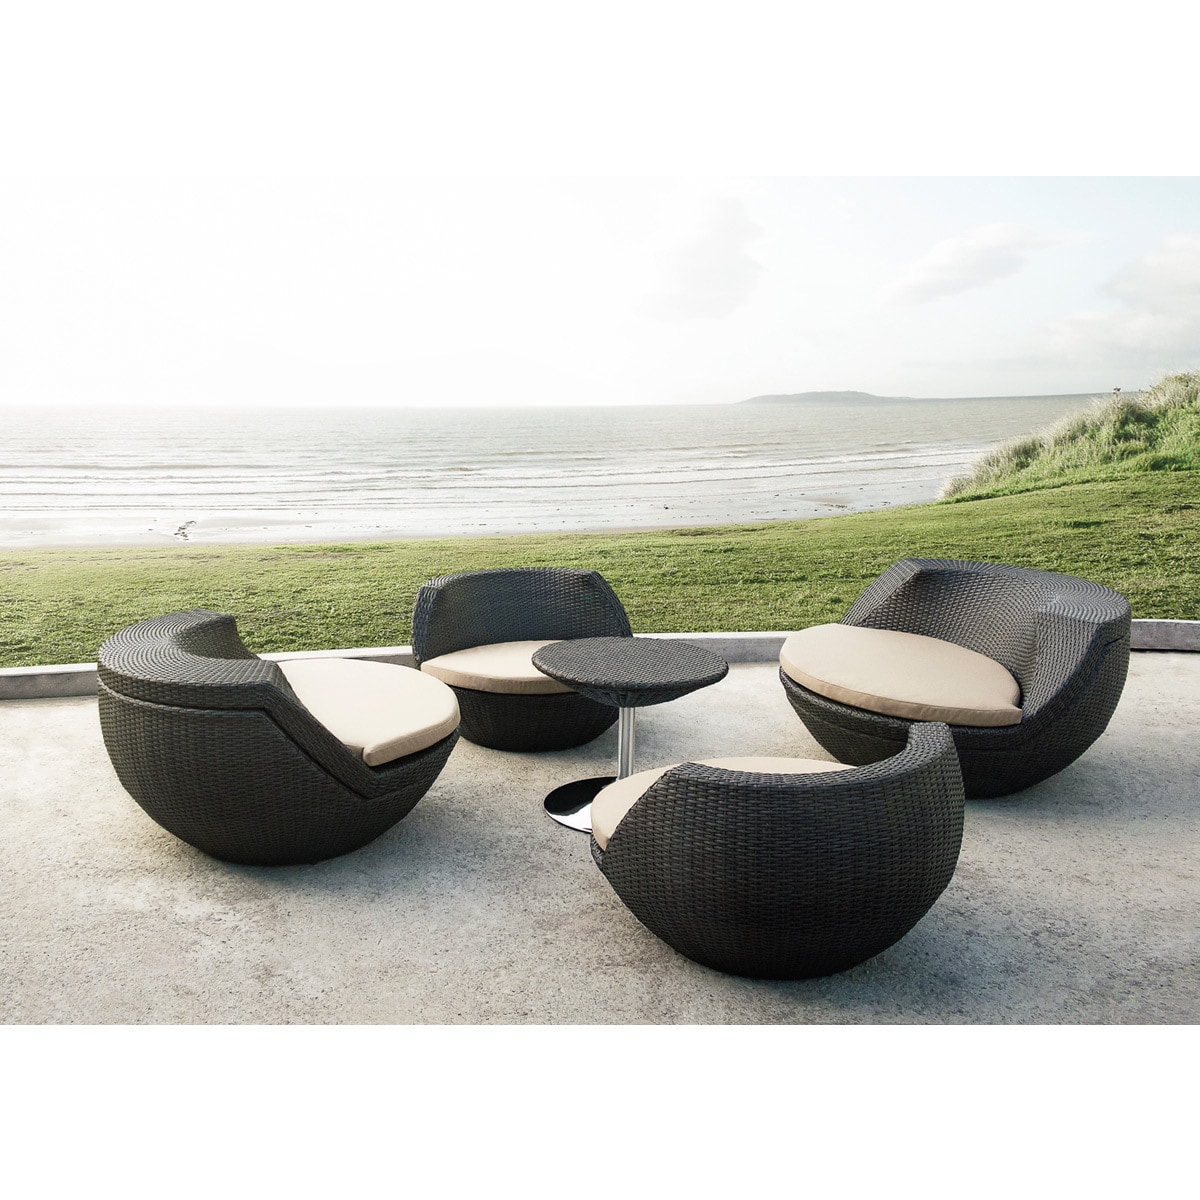 Rattan Egg Chair Set Renava Ovum Modern Brown 5 Piece Egg Shaped Patio Set